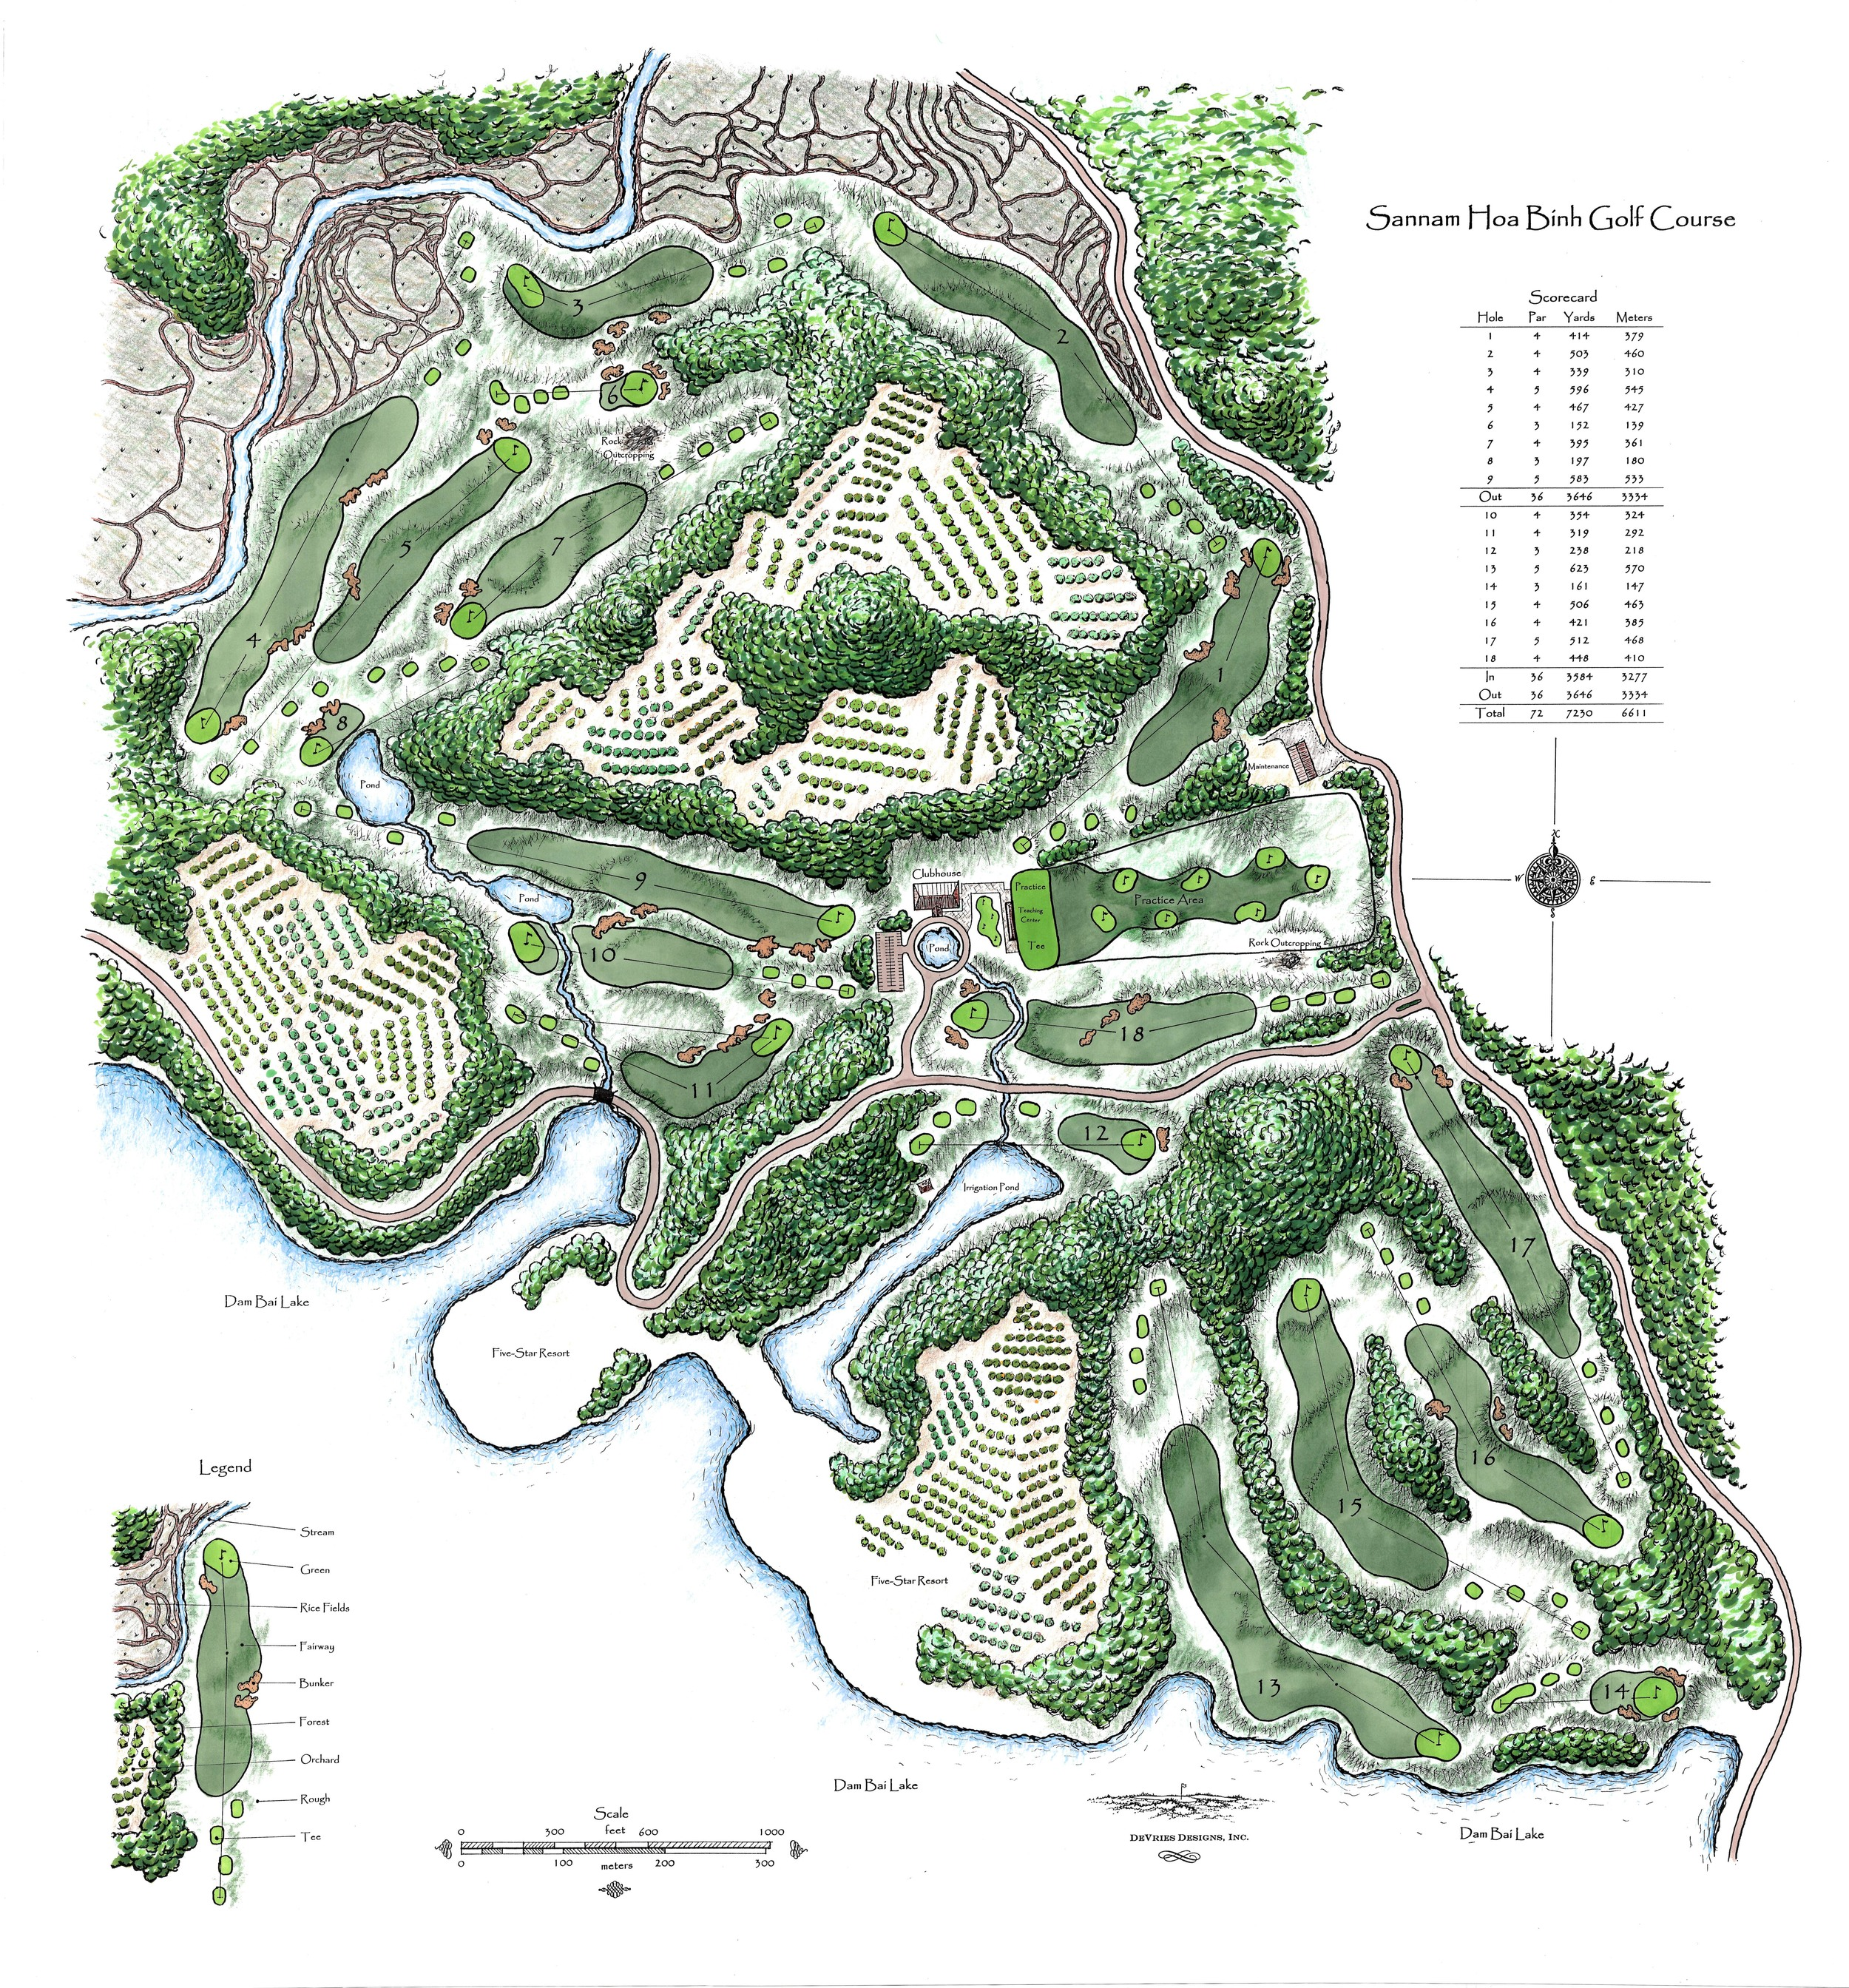 Plan drawing for a proposed Vietnamese project by golf architect Mike DeVries.